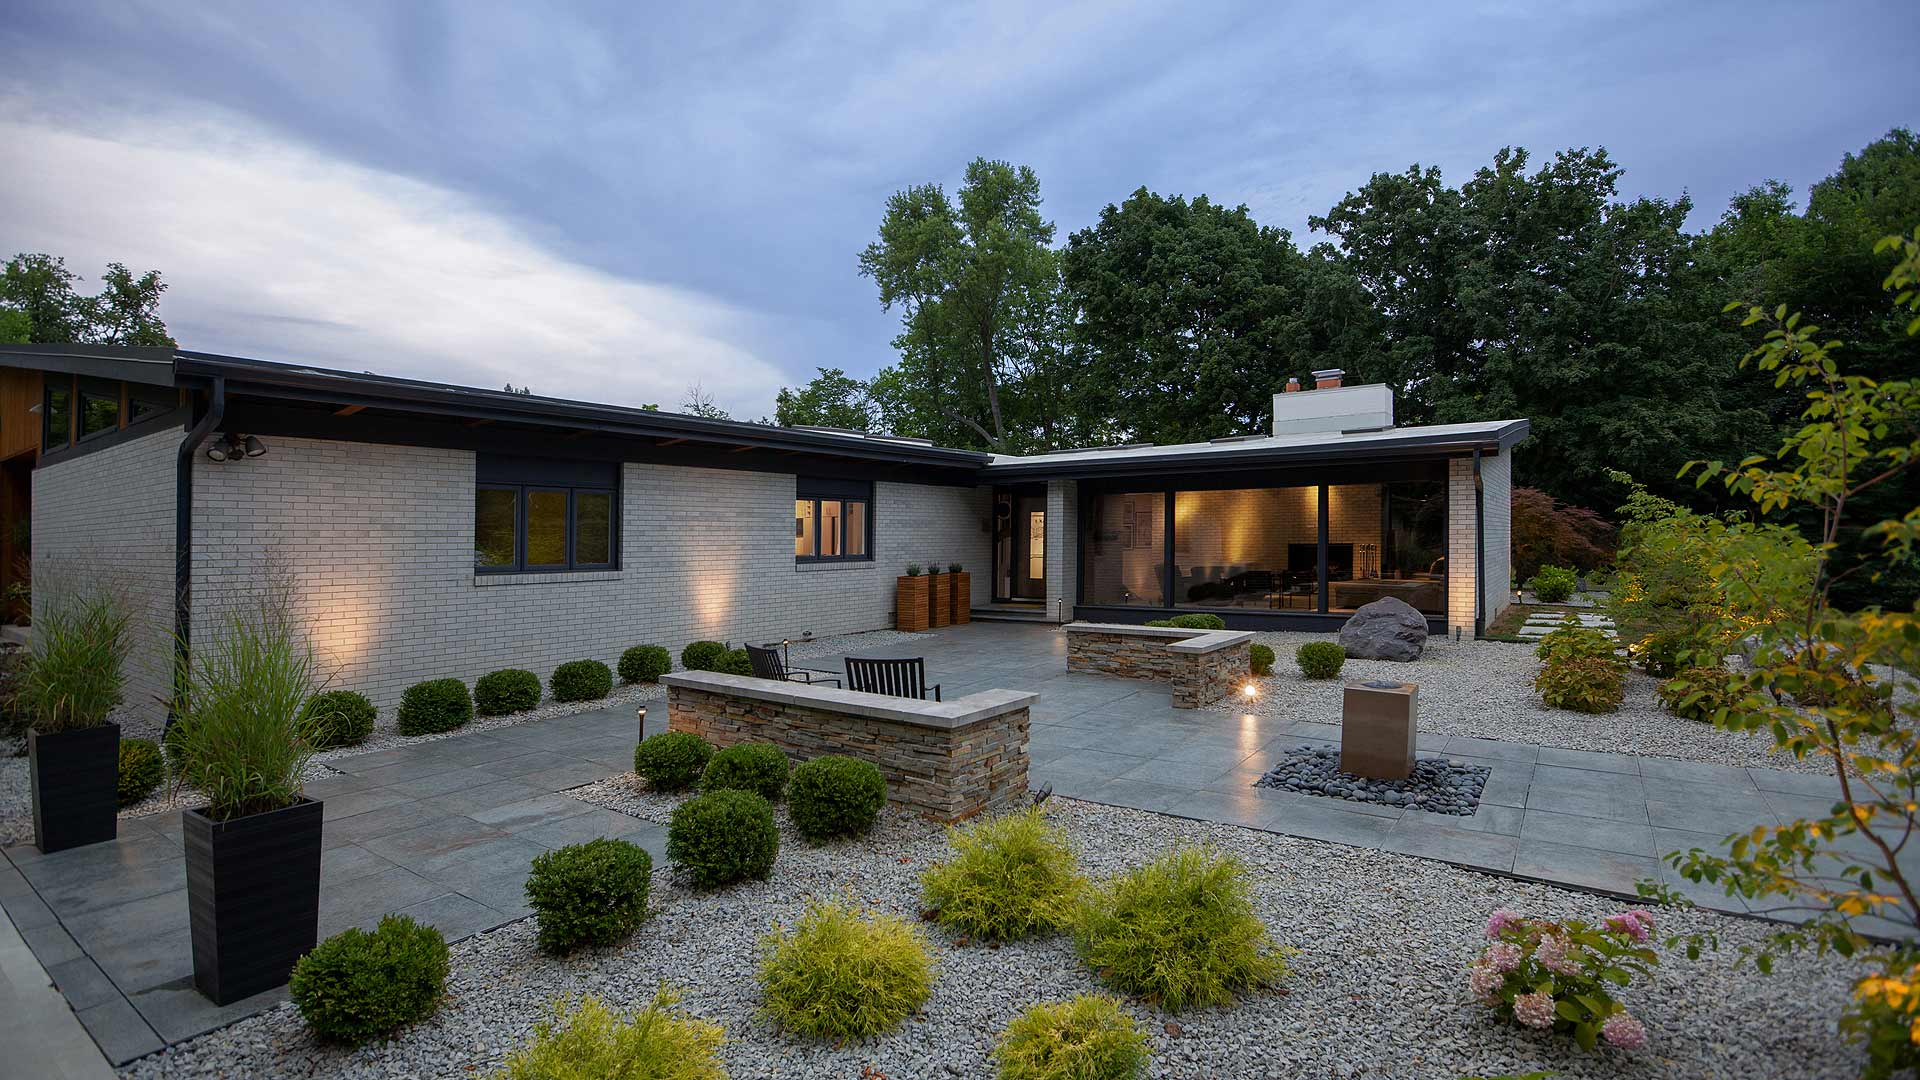 Front Entry Exterior Elevation (Original House) - Landscaped Entry Courtyard with Fountain - Floor to Ceiling Glass - Midcentury Modern Addition (Cigar Room) - Brendonwood, Indianapolis